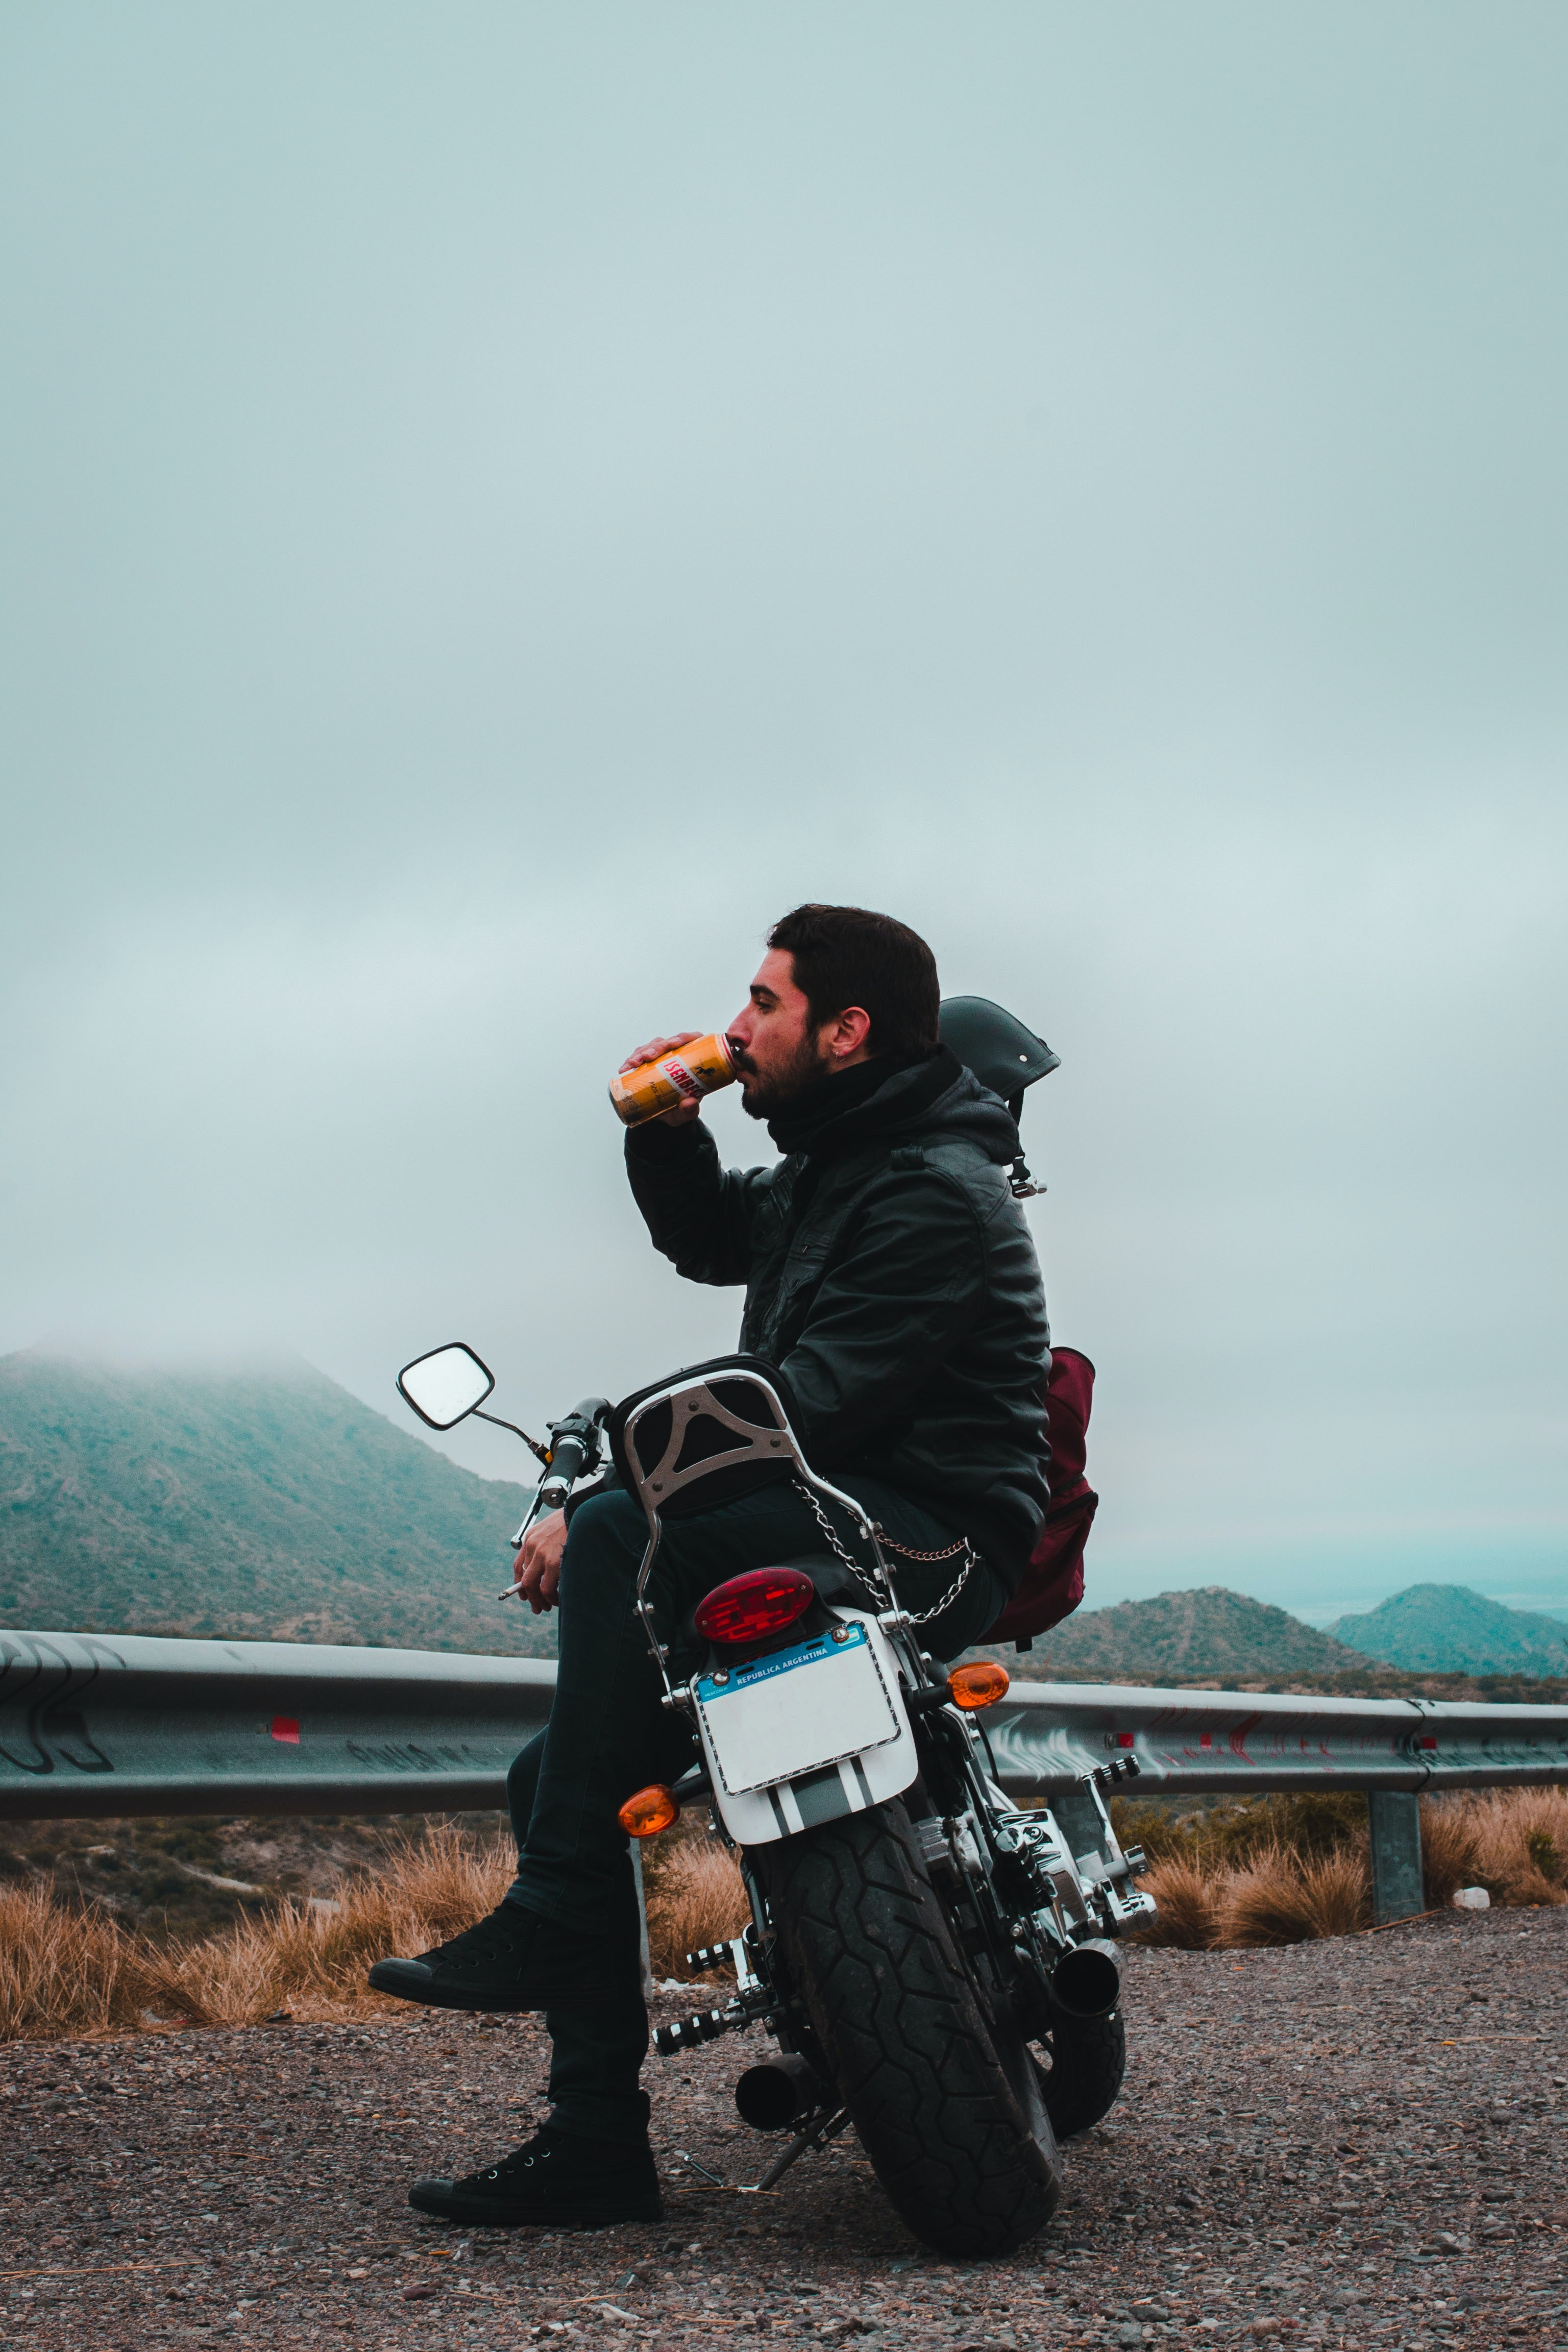 Man in leather jacket drinking and sitting on motorcycle